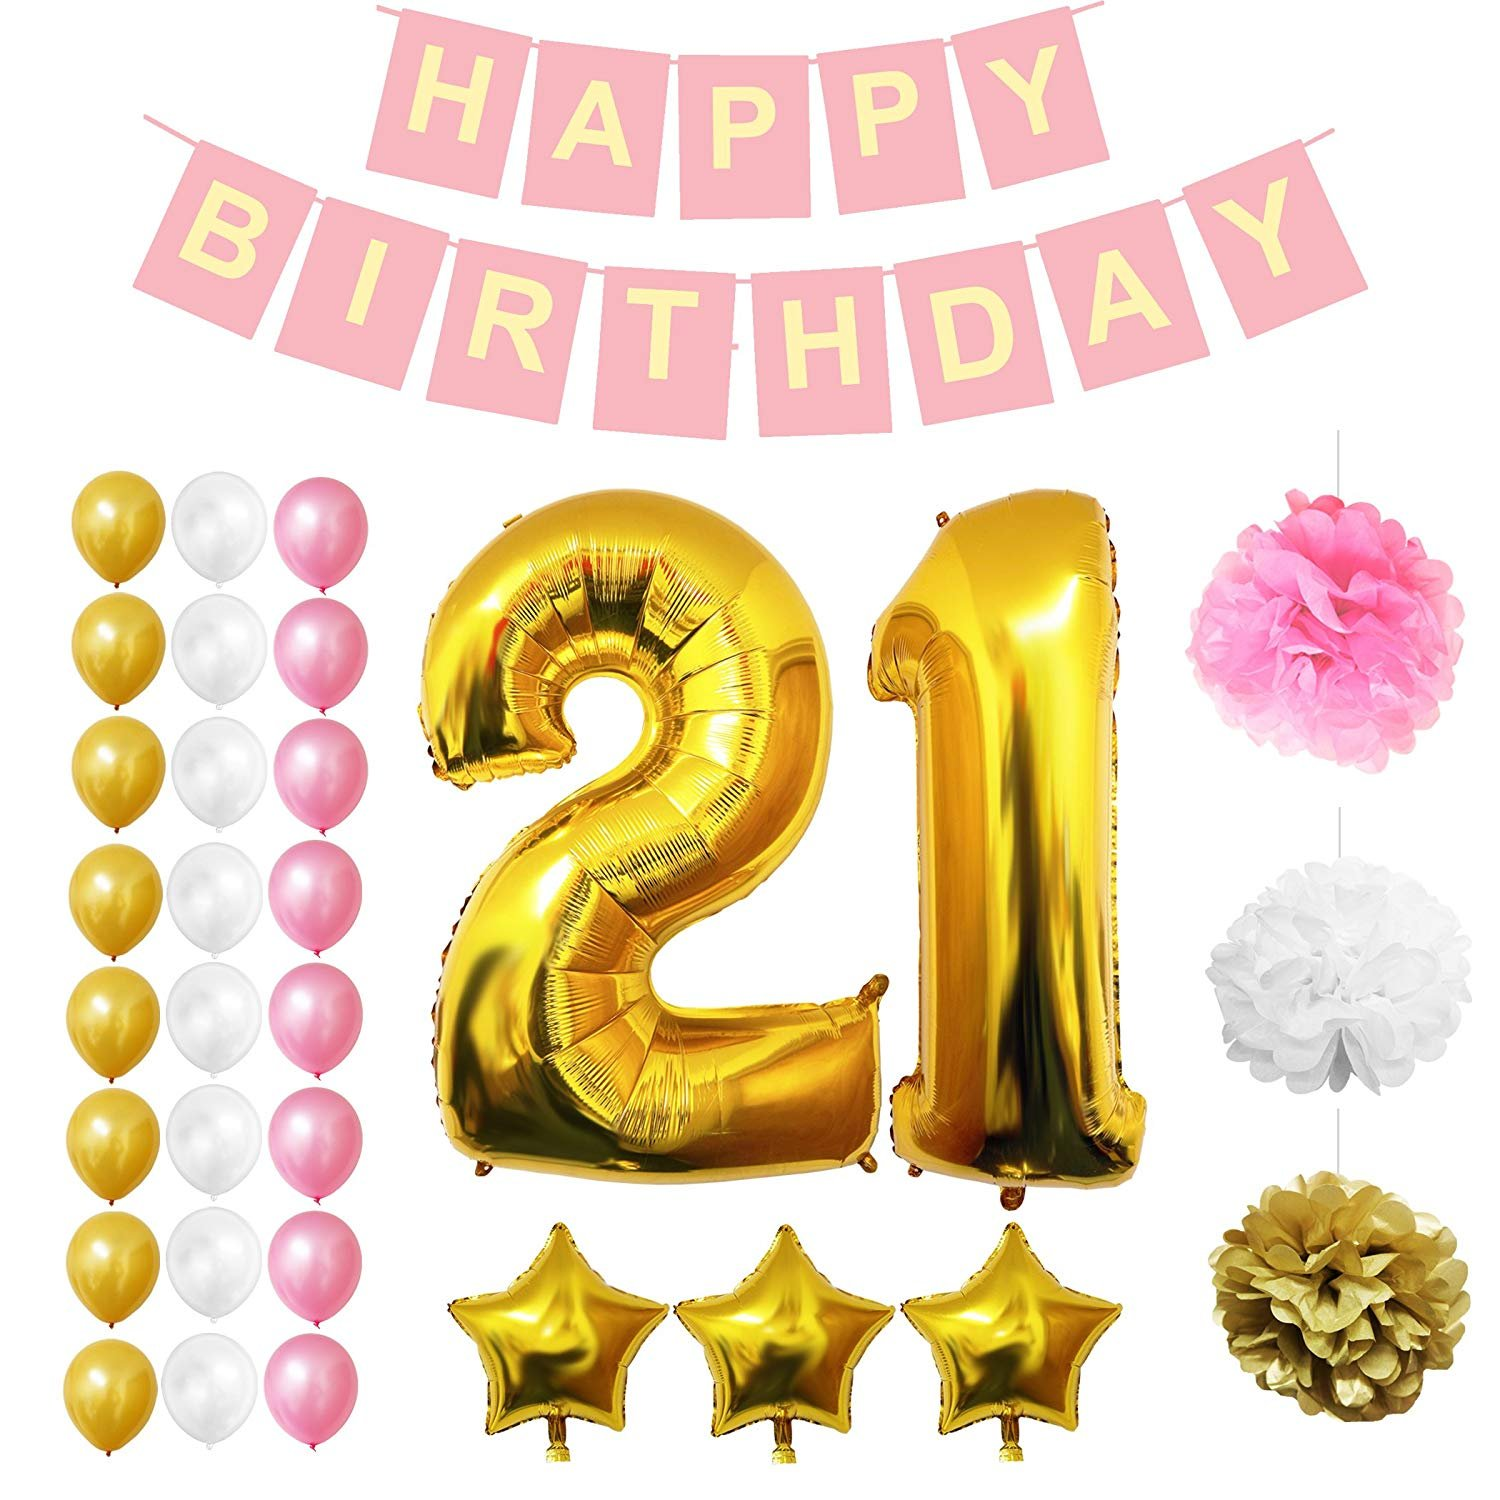 21st Happy Birthday Party Balloons, Supplies & Decorations